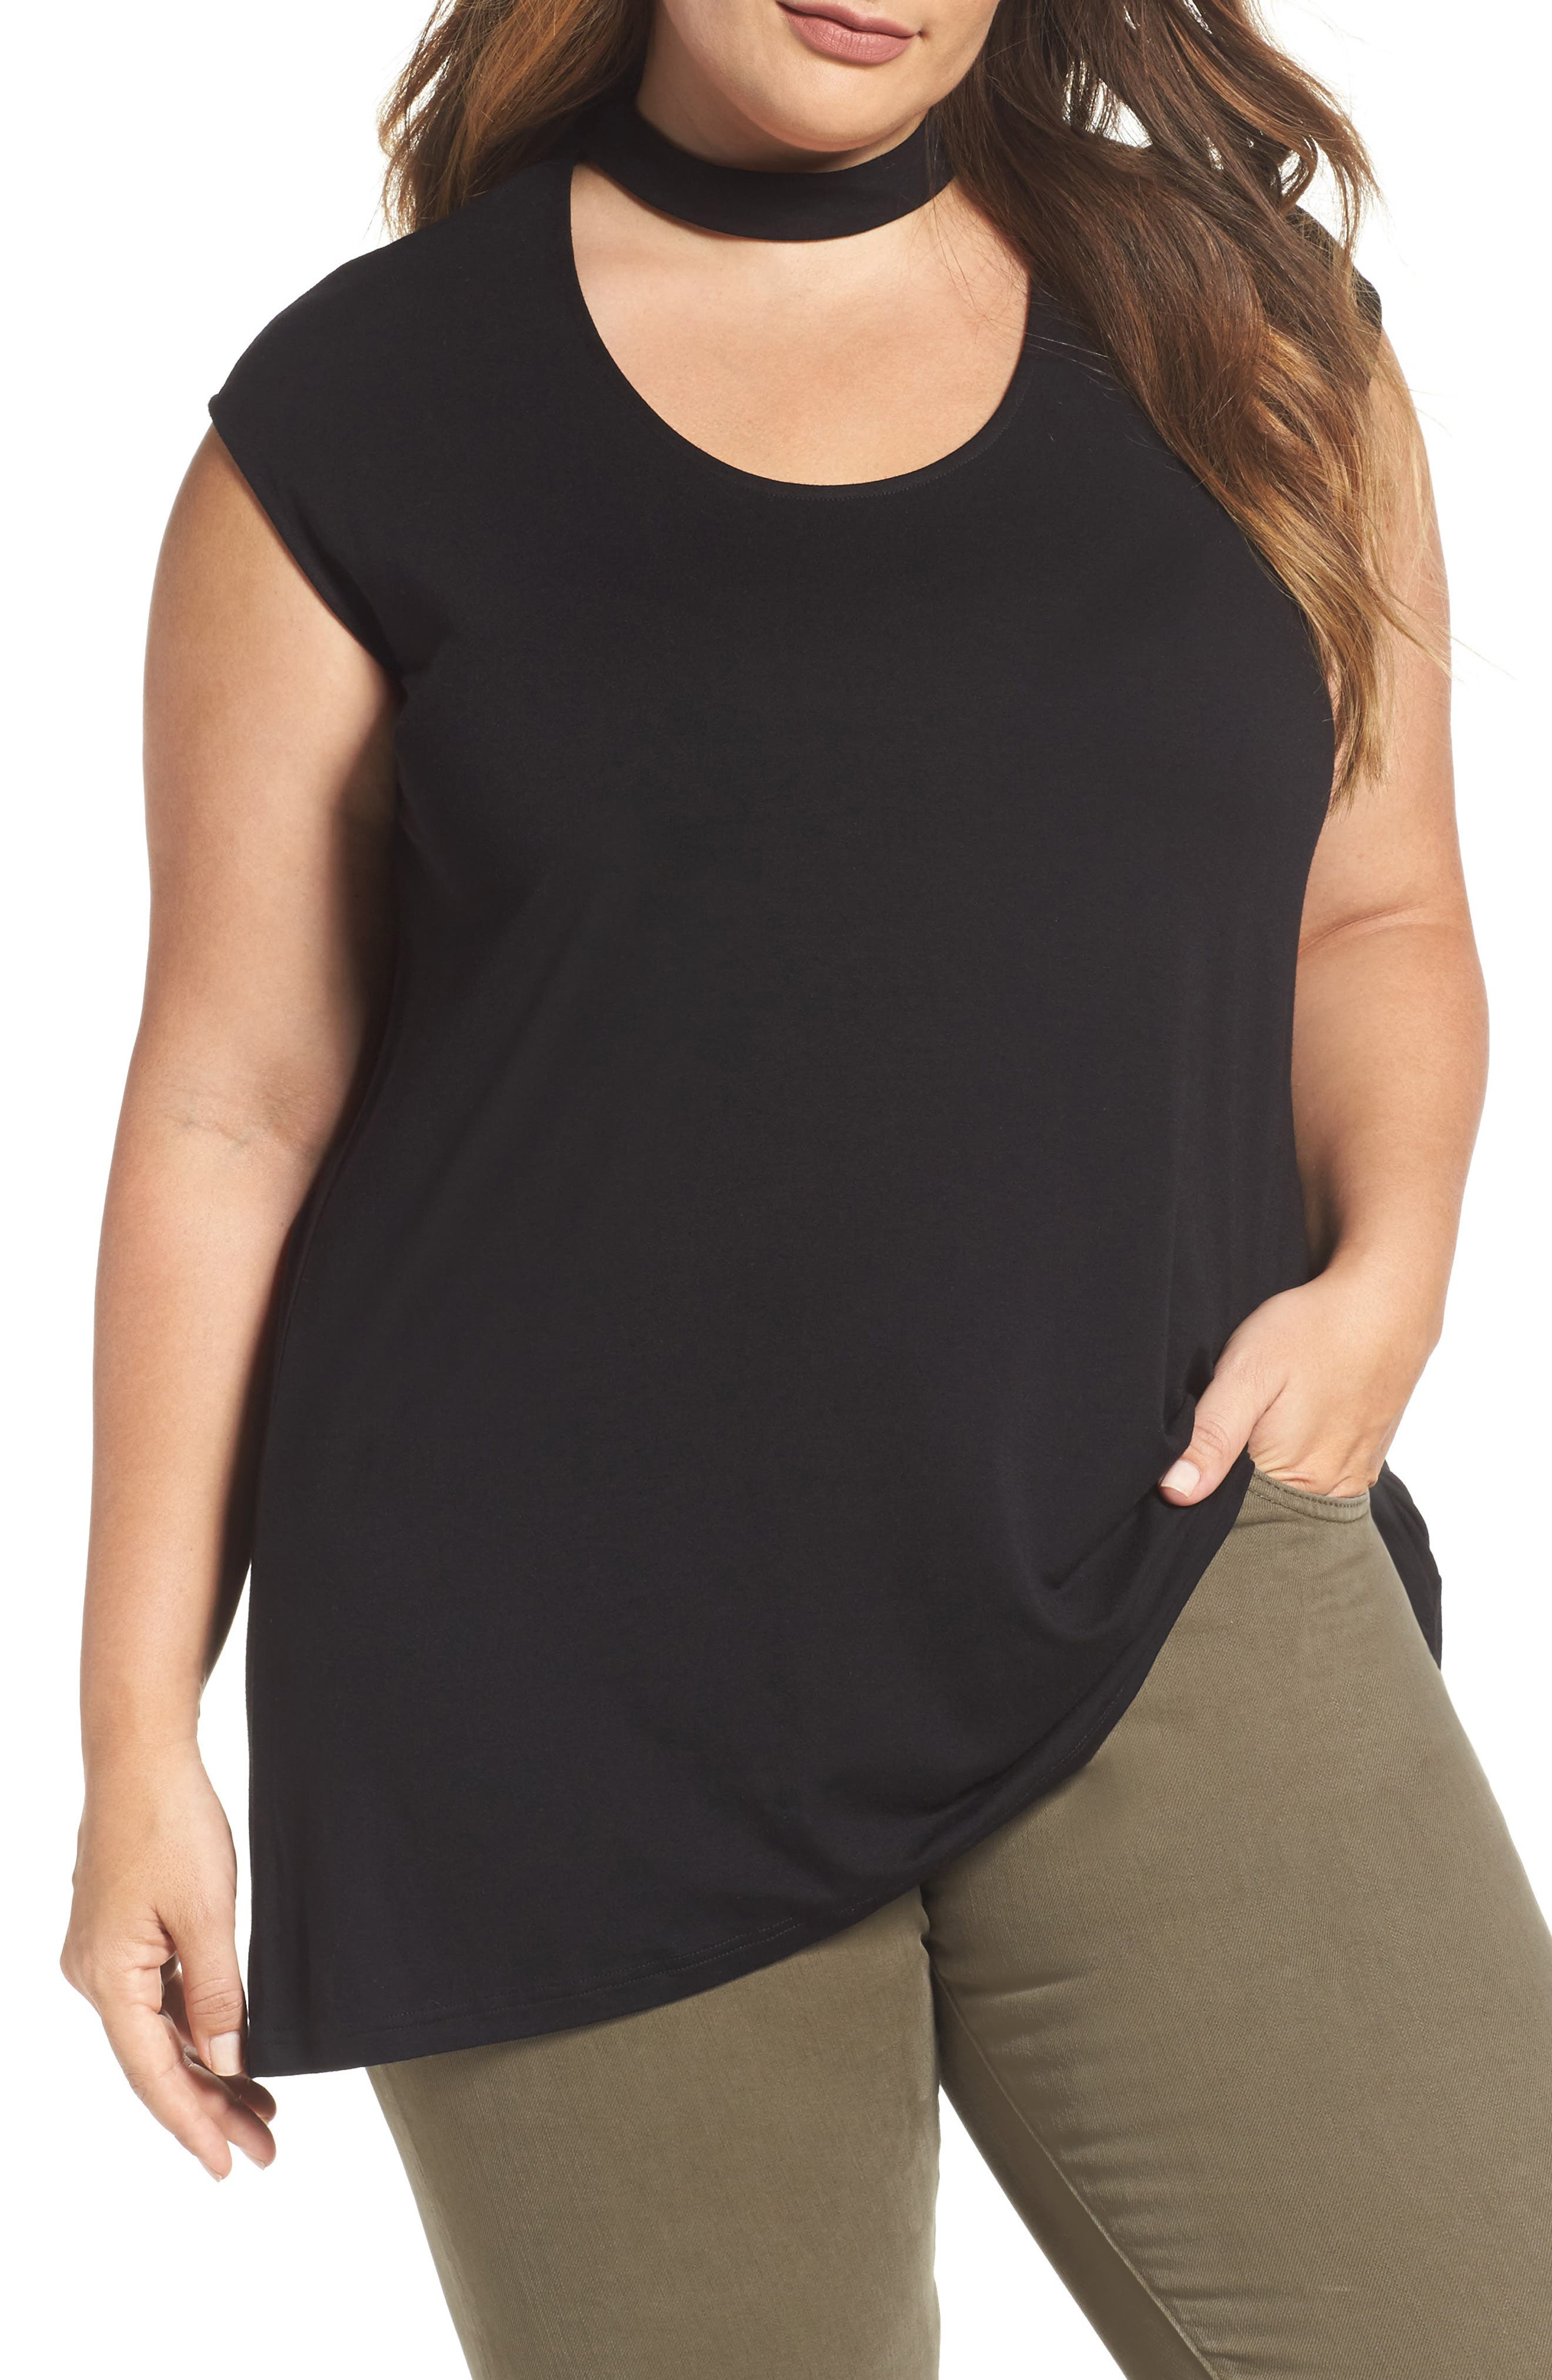 Alternate Image 1 Selected - Vince Camuto Choker Neck High/Low Top (Plus Size)